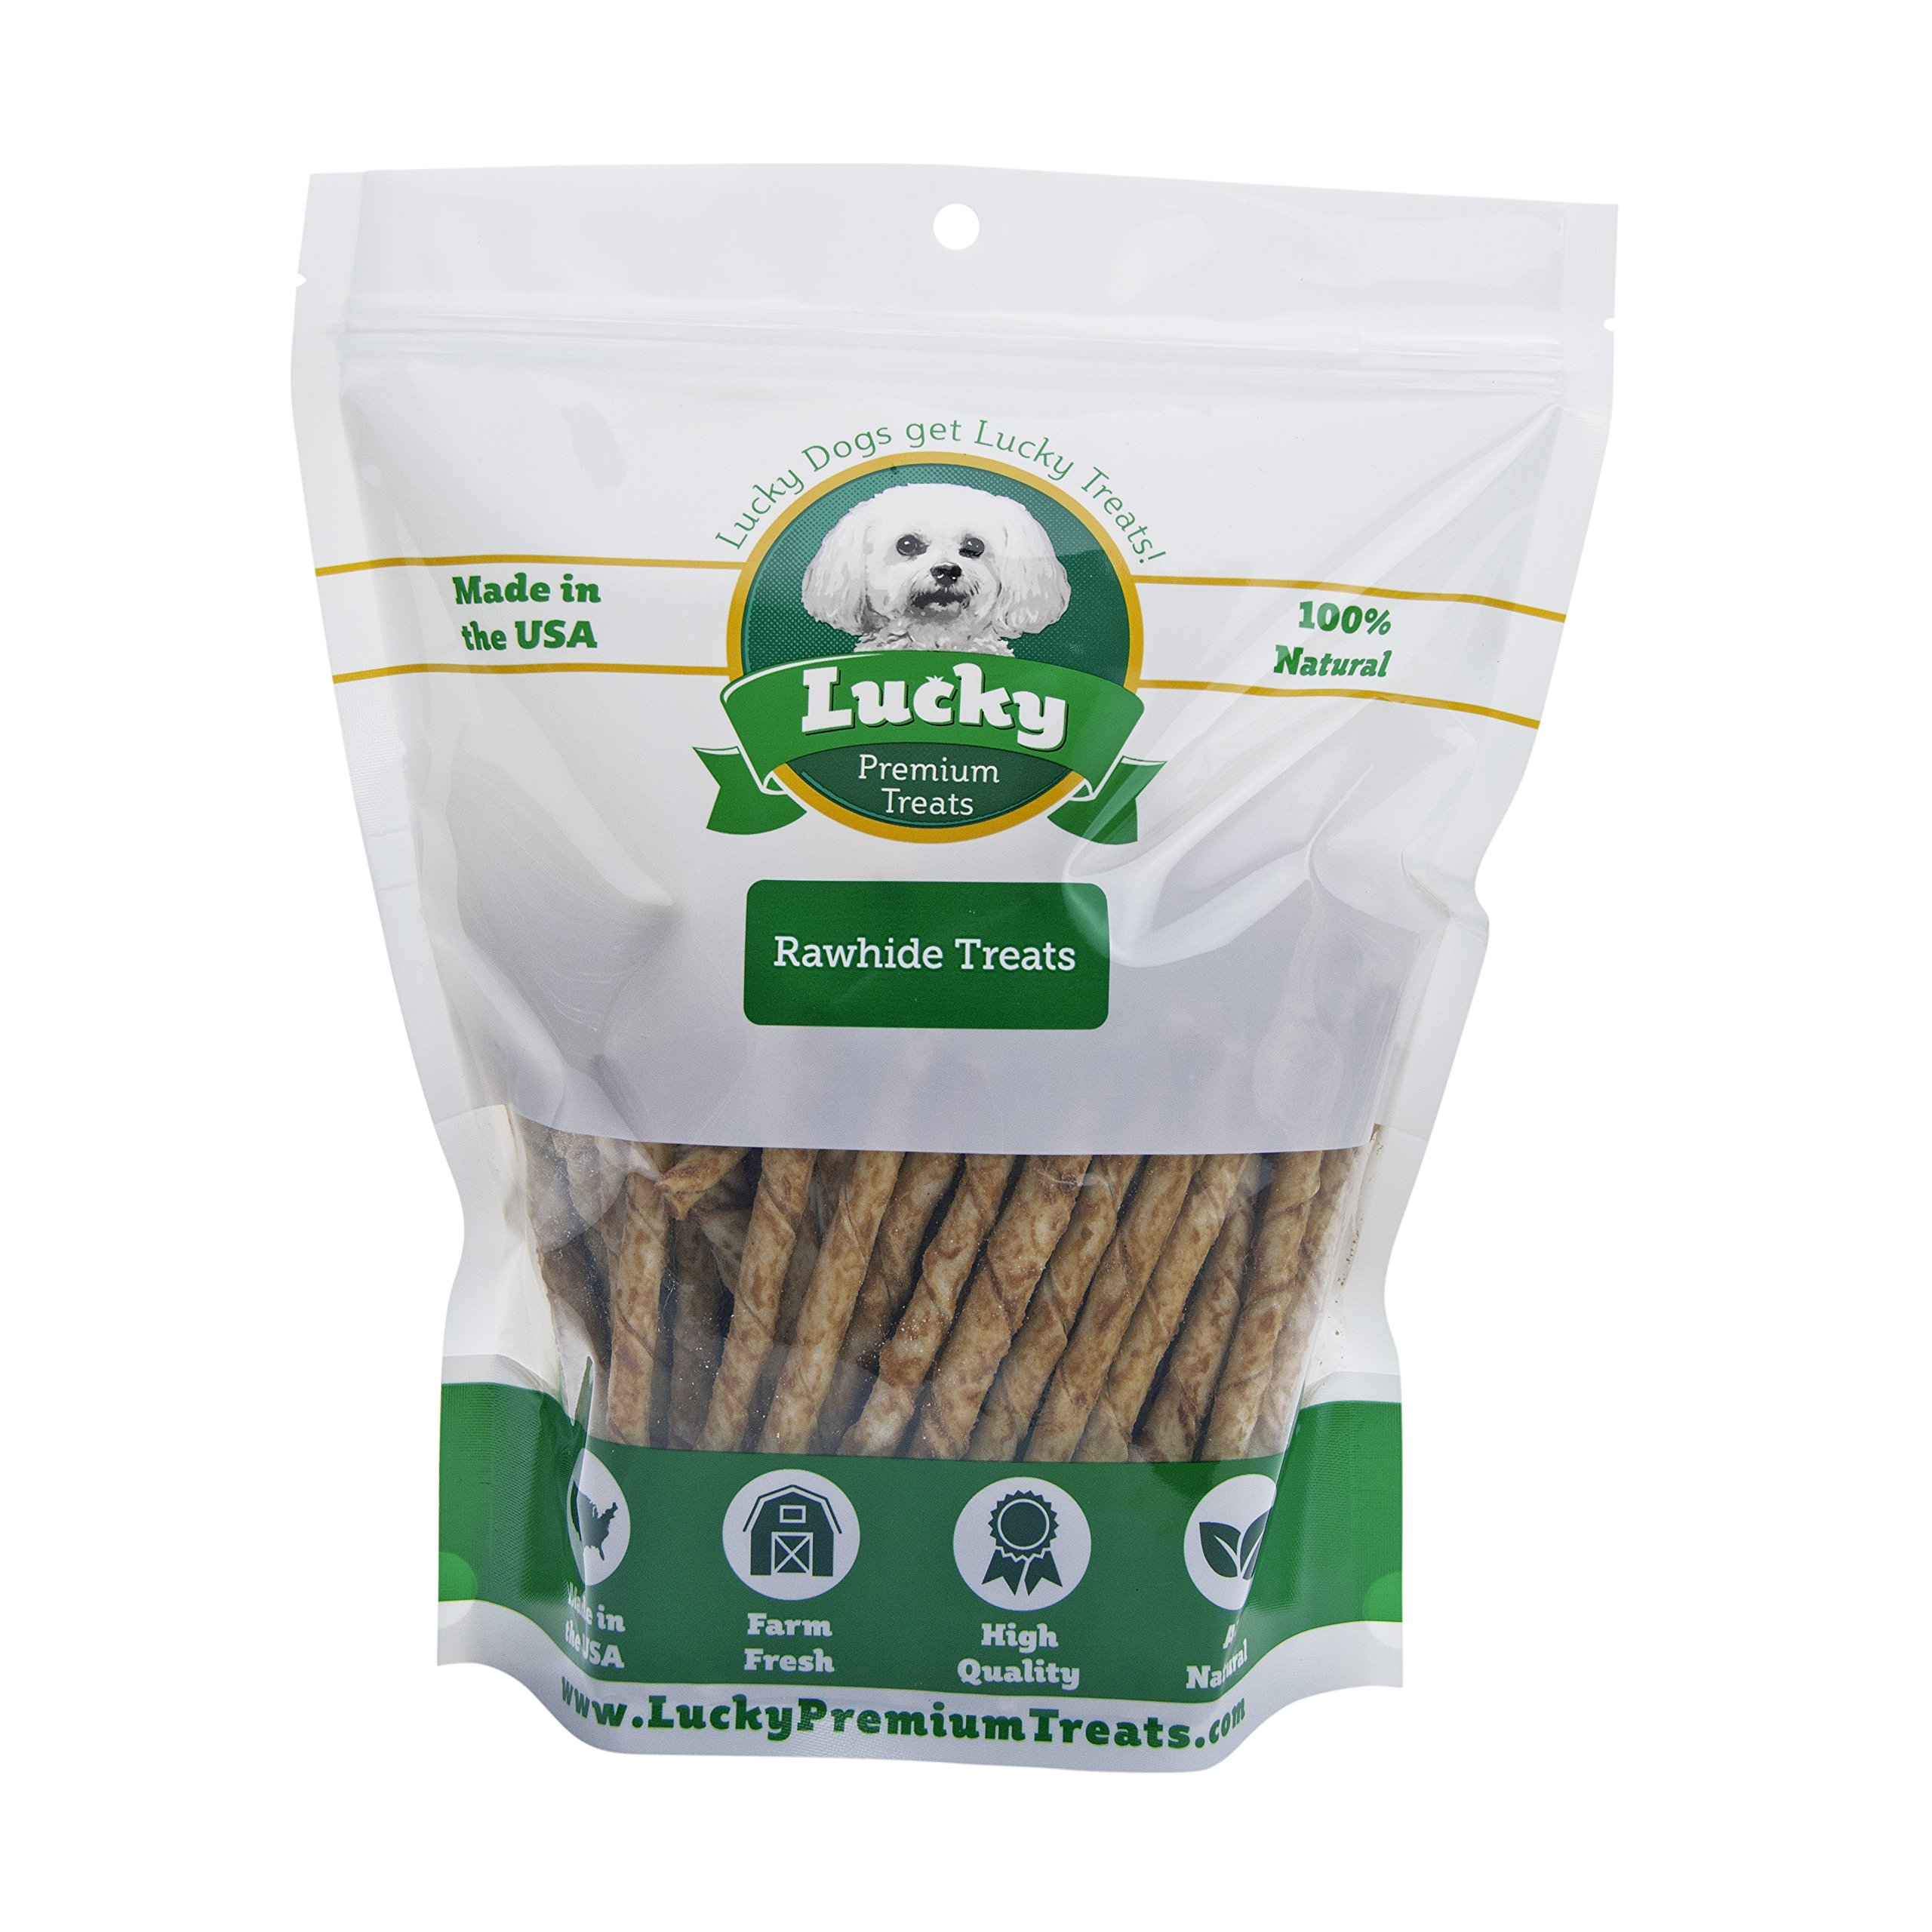 Peanut Butter Flavored Rawhide Dog Treats for Small Dogs Made in the USA Only by Lucky Premium Treats, 365 Chews